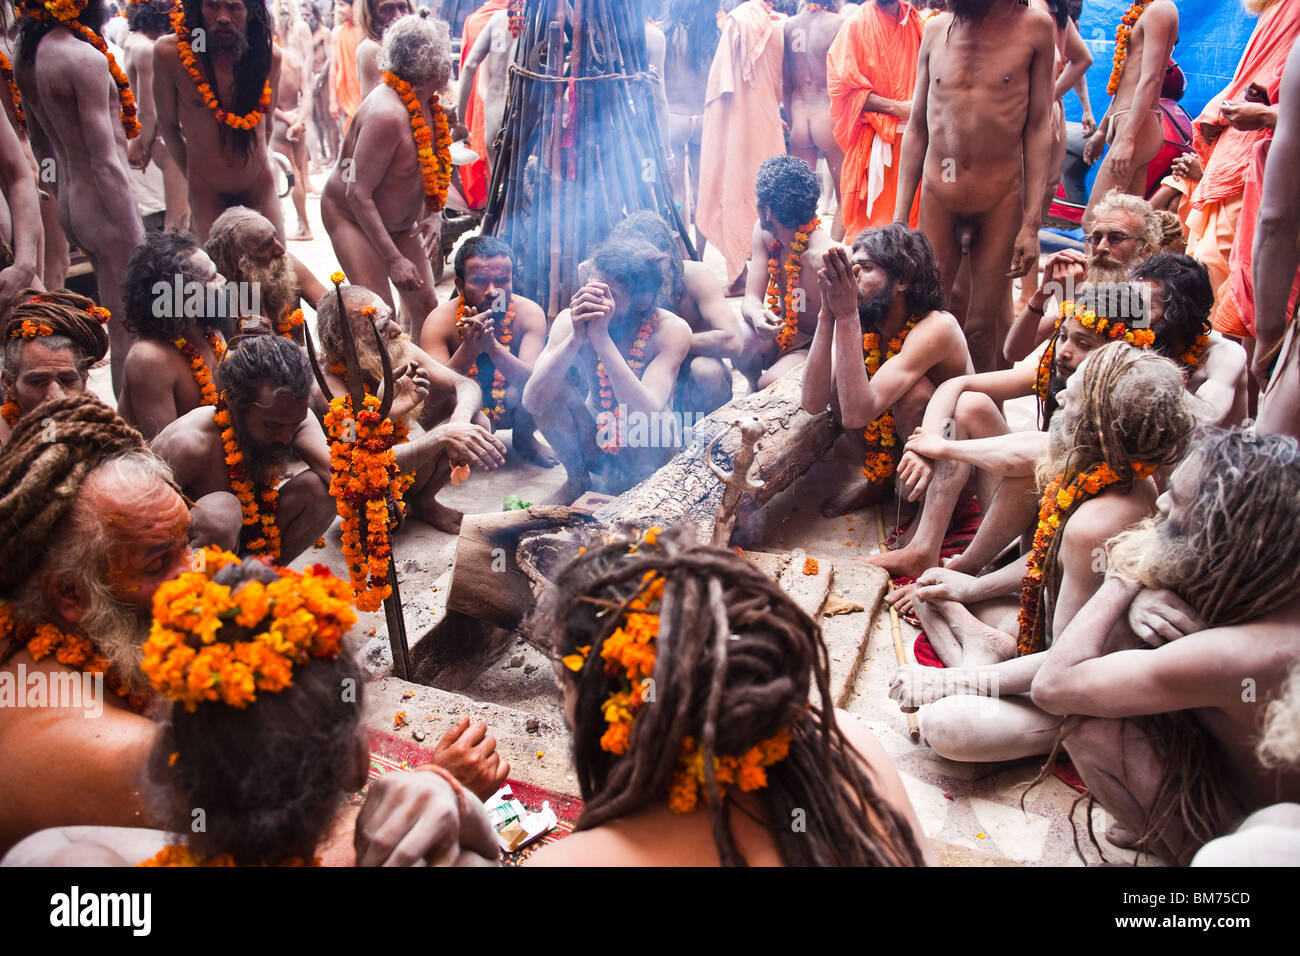 Naga Sadus during the Haridwar Kumbh mela 2010. India - Stock Image